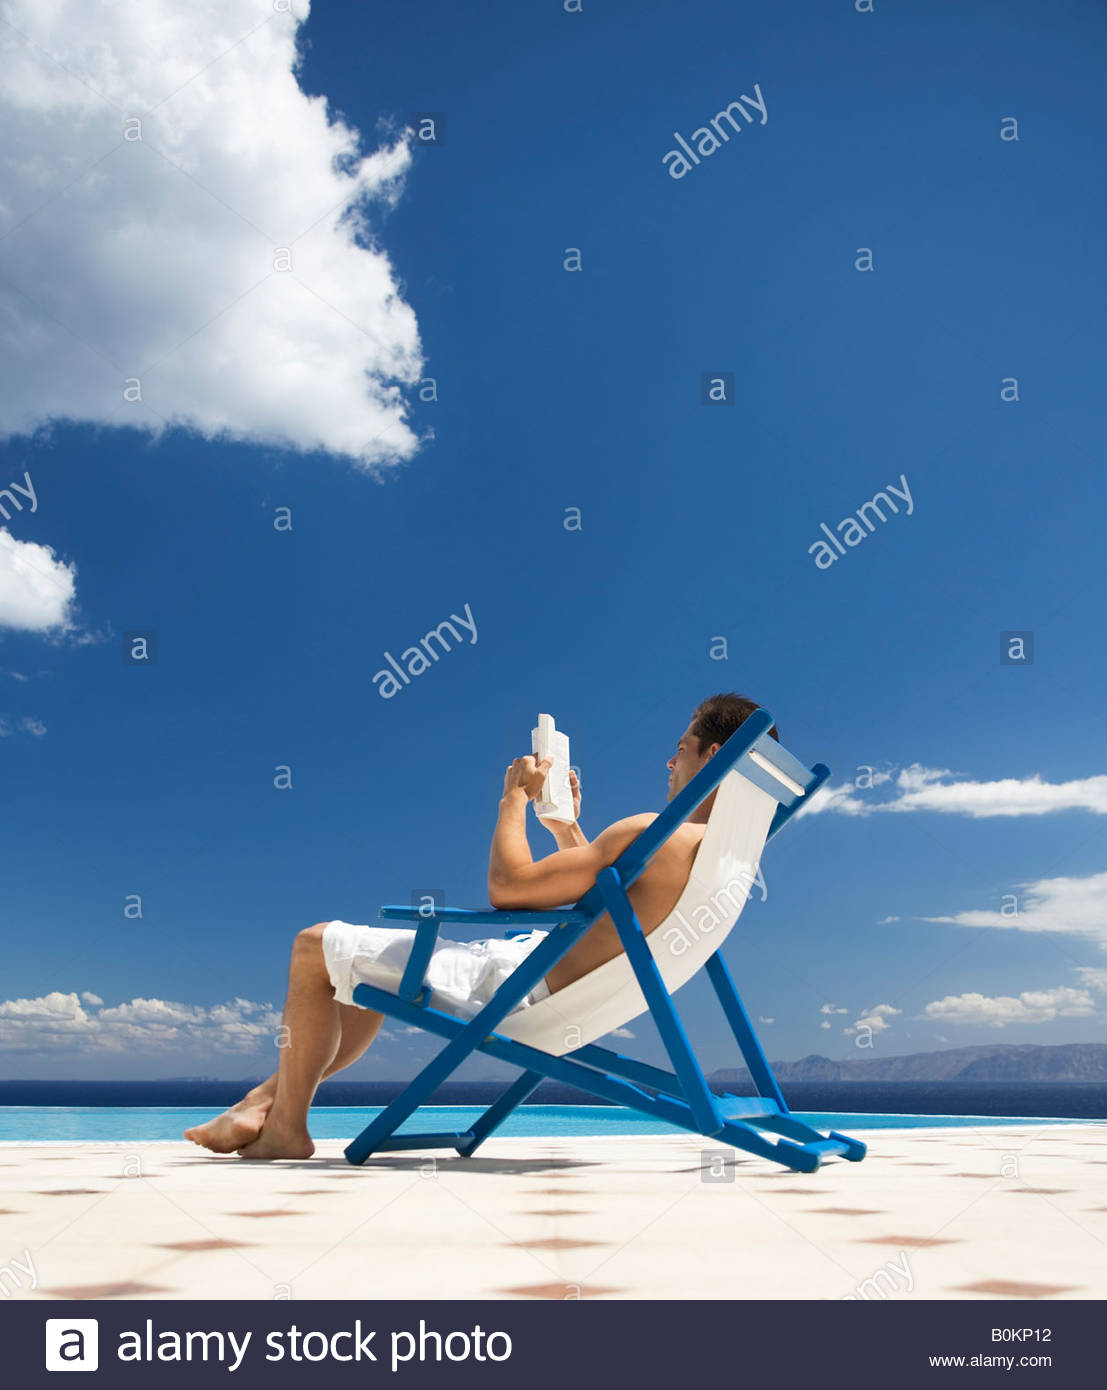 A man relaxing in a deck chair - Stock Image